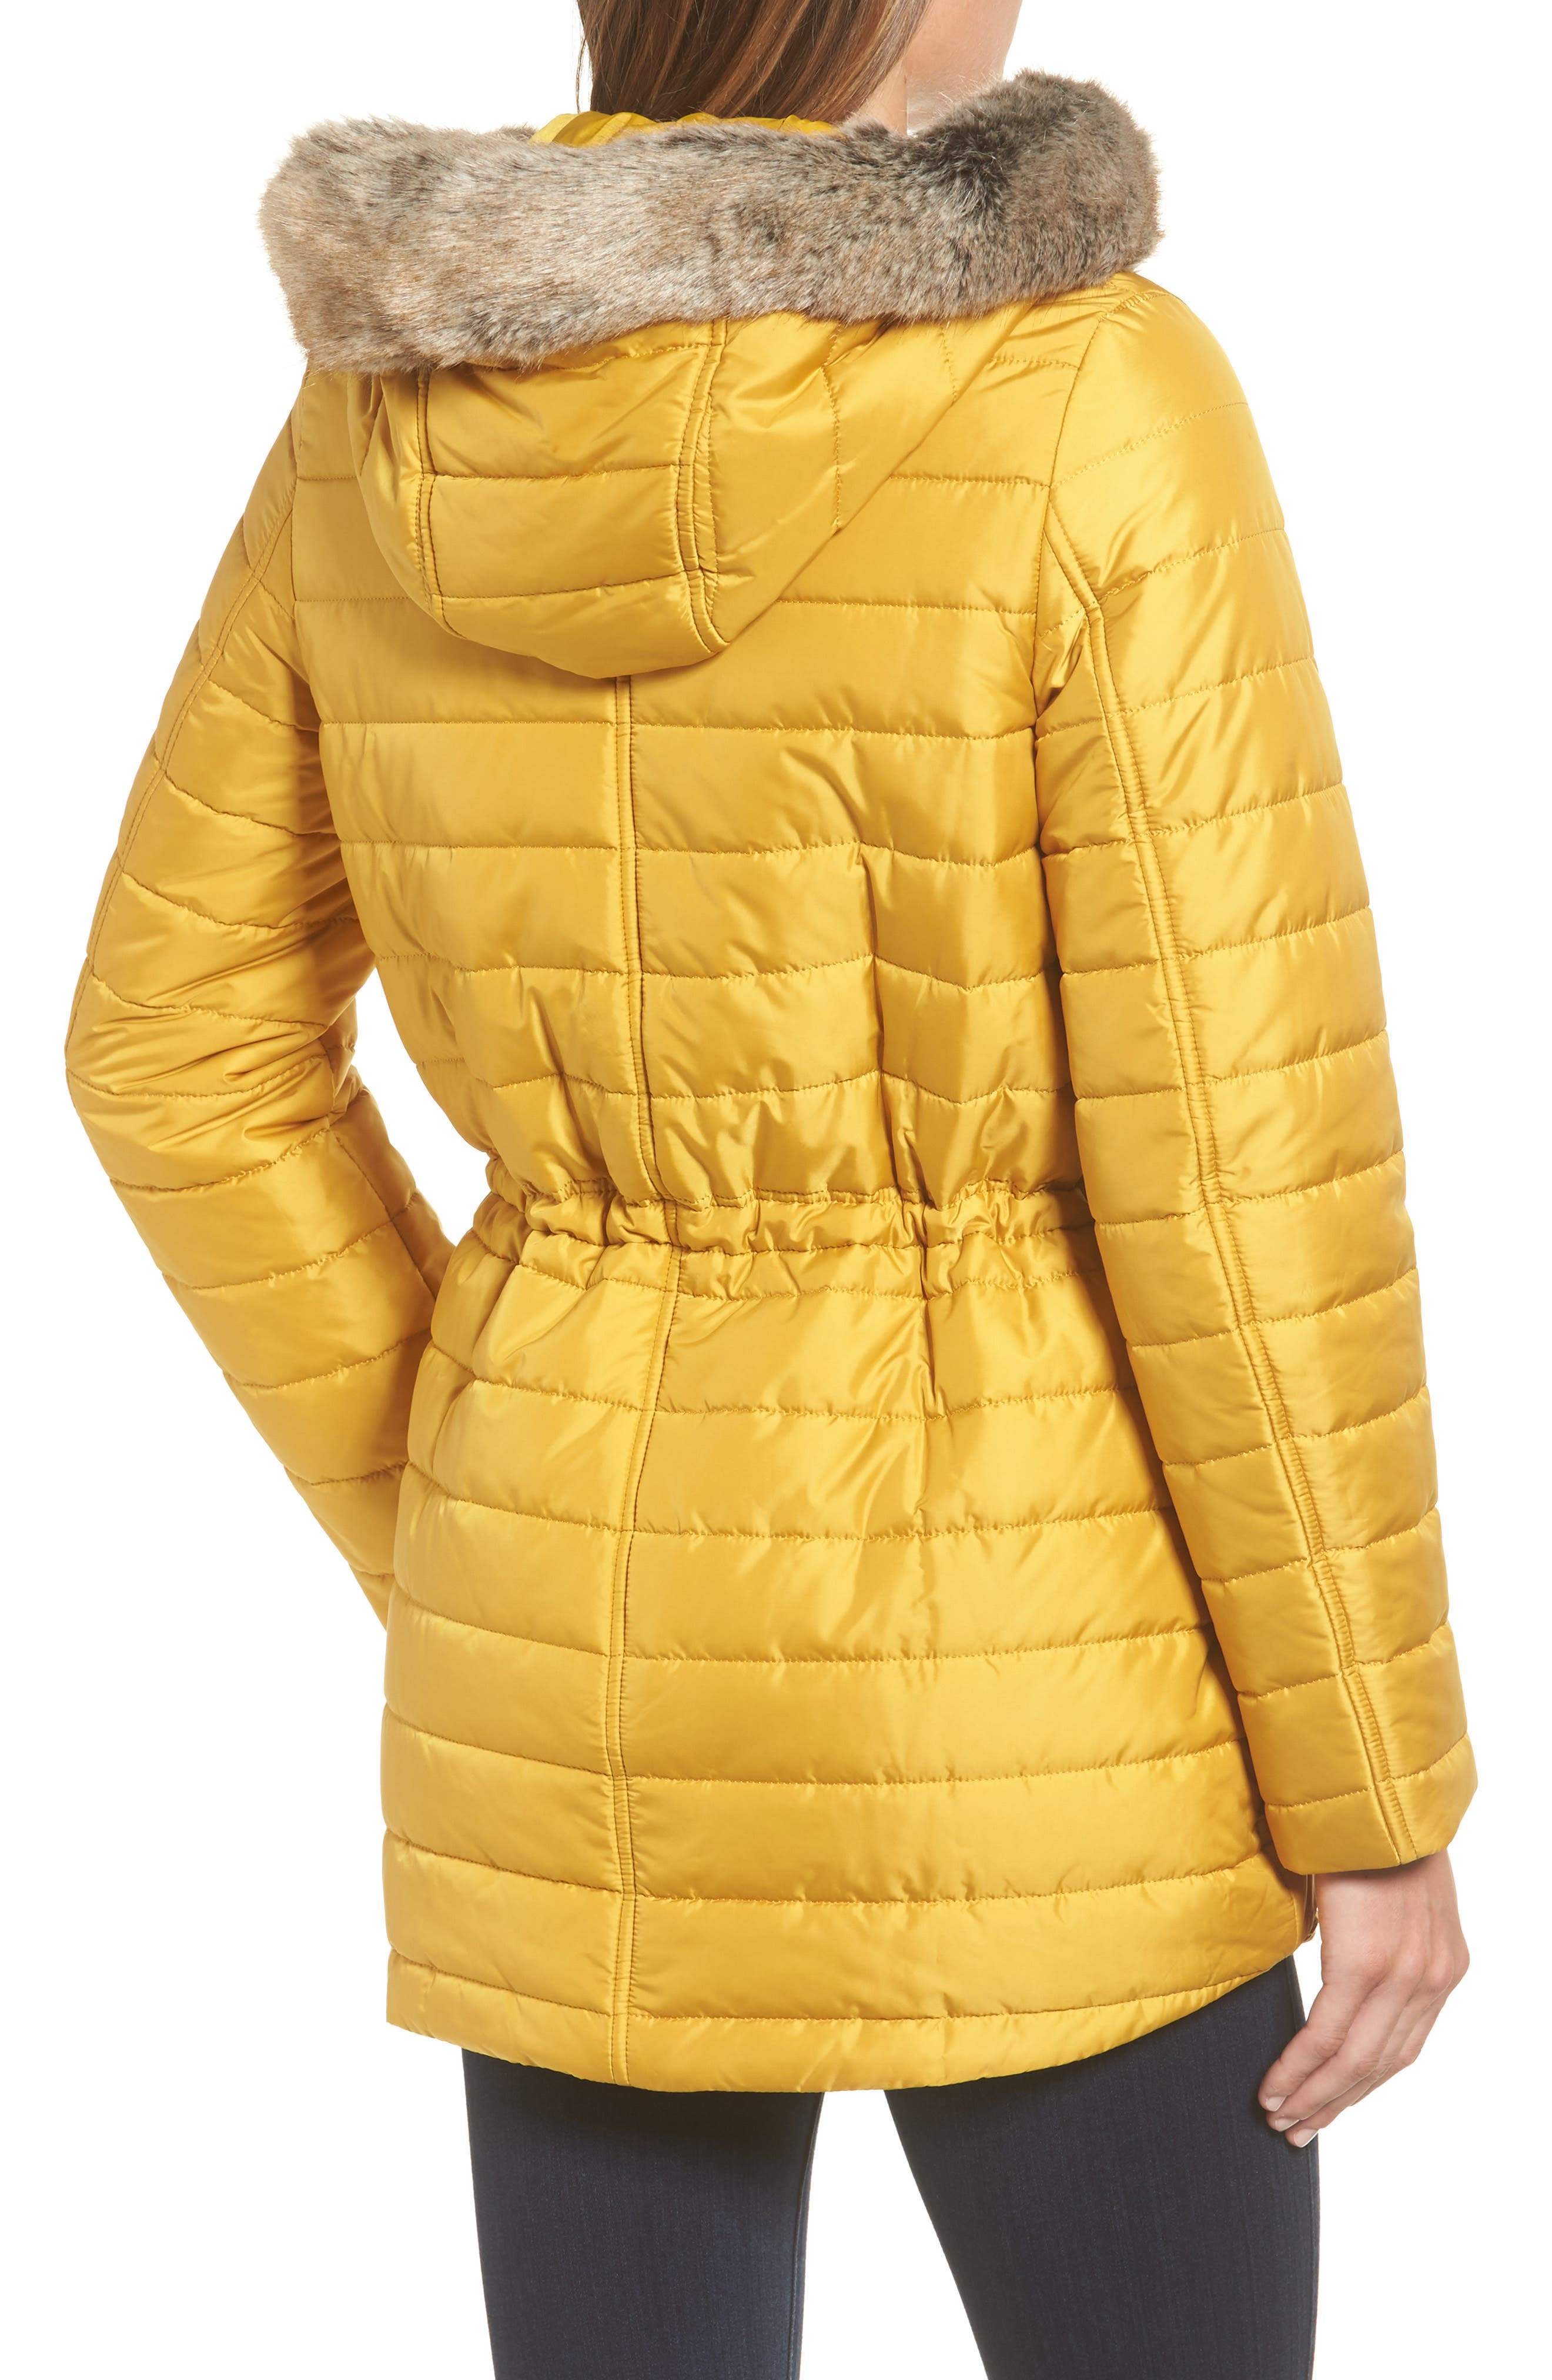 Ascott Water Resistant Quilted Jacket,                             Alternate thumbnail 2, color,                             720